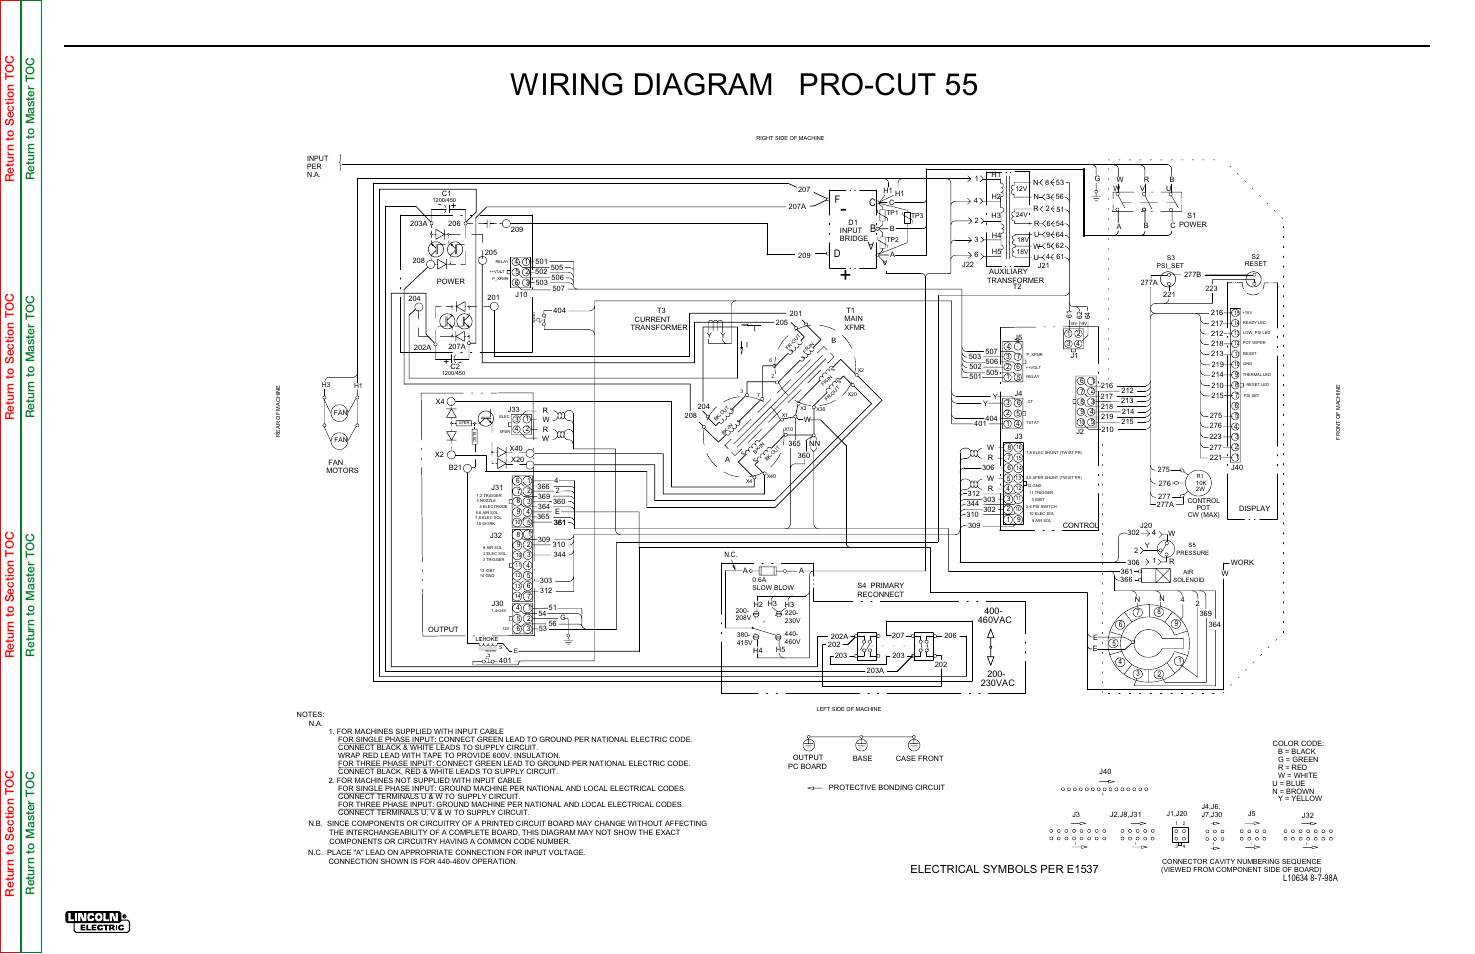 wiring diagram pro cut 55, electrical diagrams, wiring diagram minuteman shampoo machine electrical diagram wiring diagram pro cut 55, electrical diagrams, wiring diagram entire machine